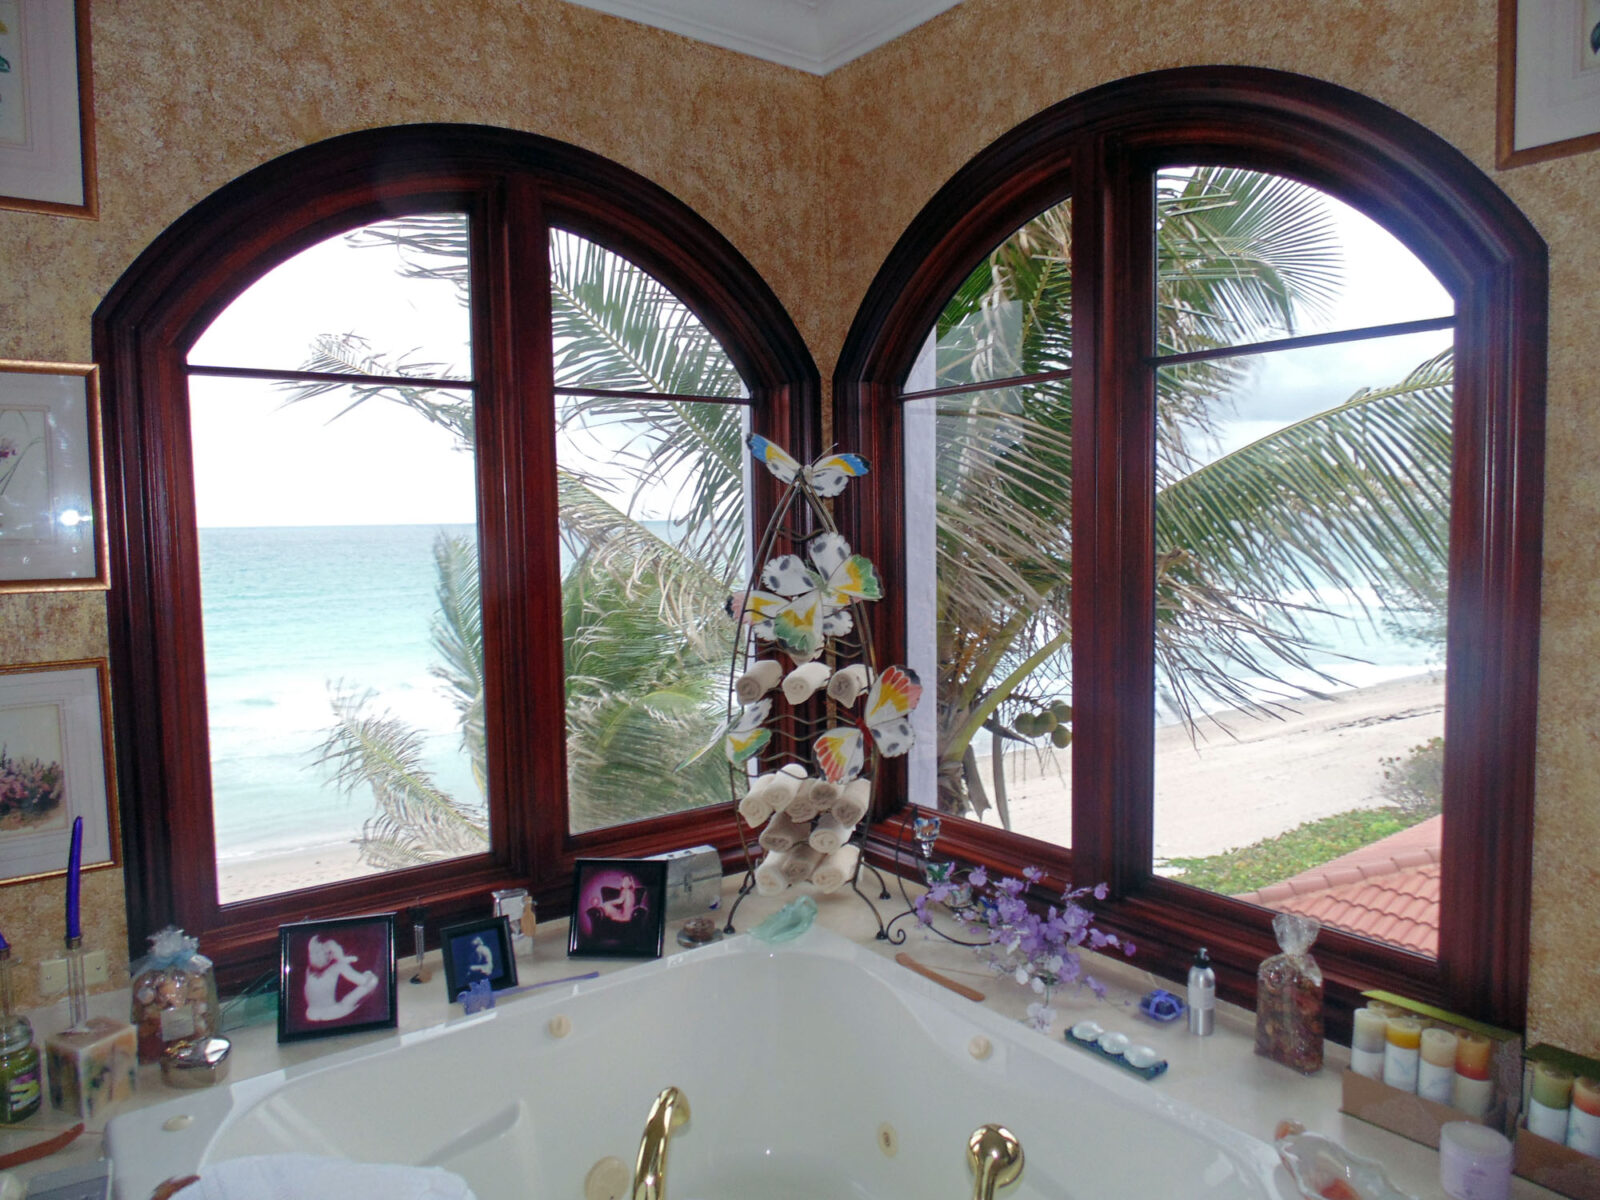 HIGHLAND BEACH MAHOGANY BATHROOM WINDOWS